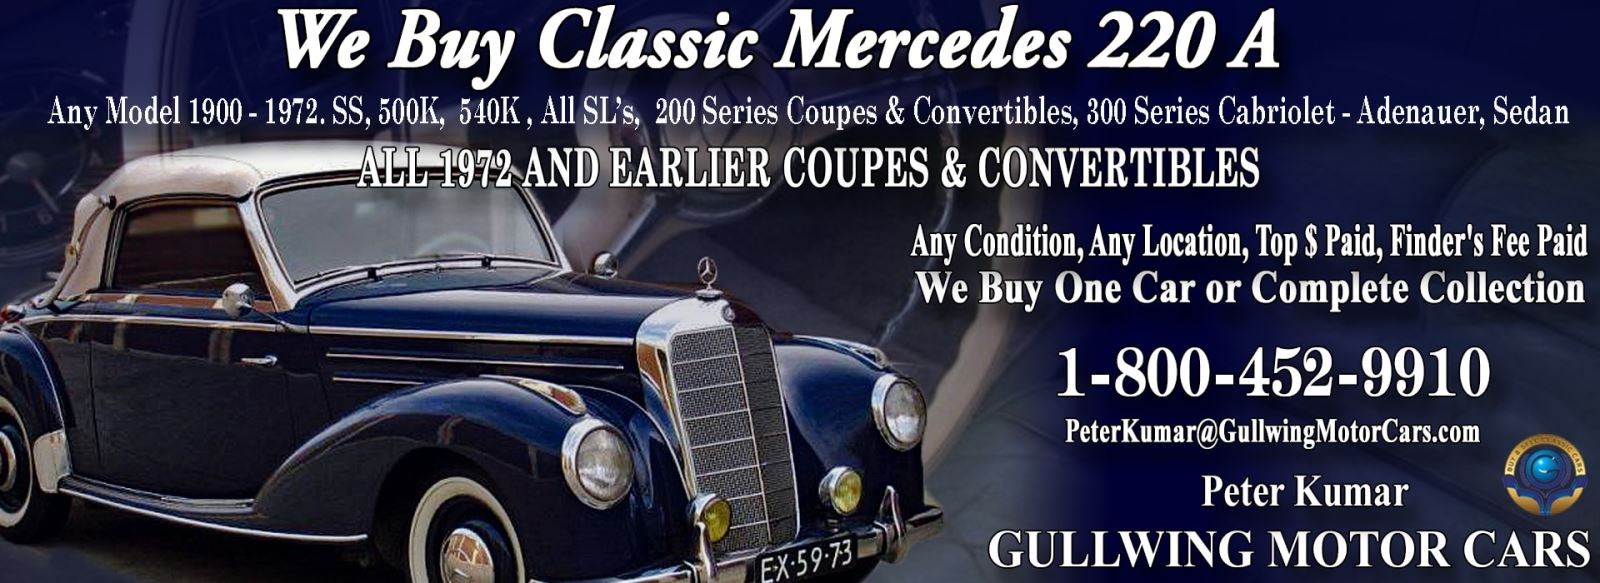 Classic Mercedes 220A for sale, we buy vintage Mercedes 220A. Call Peter Kumar. Gullwing Motor